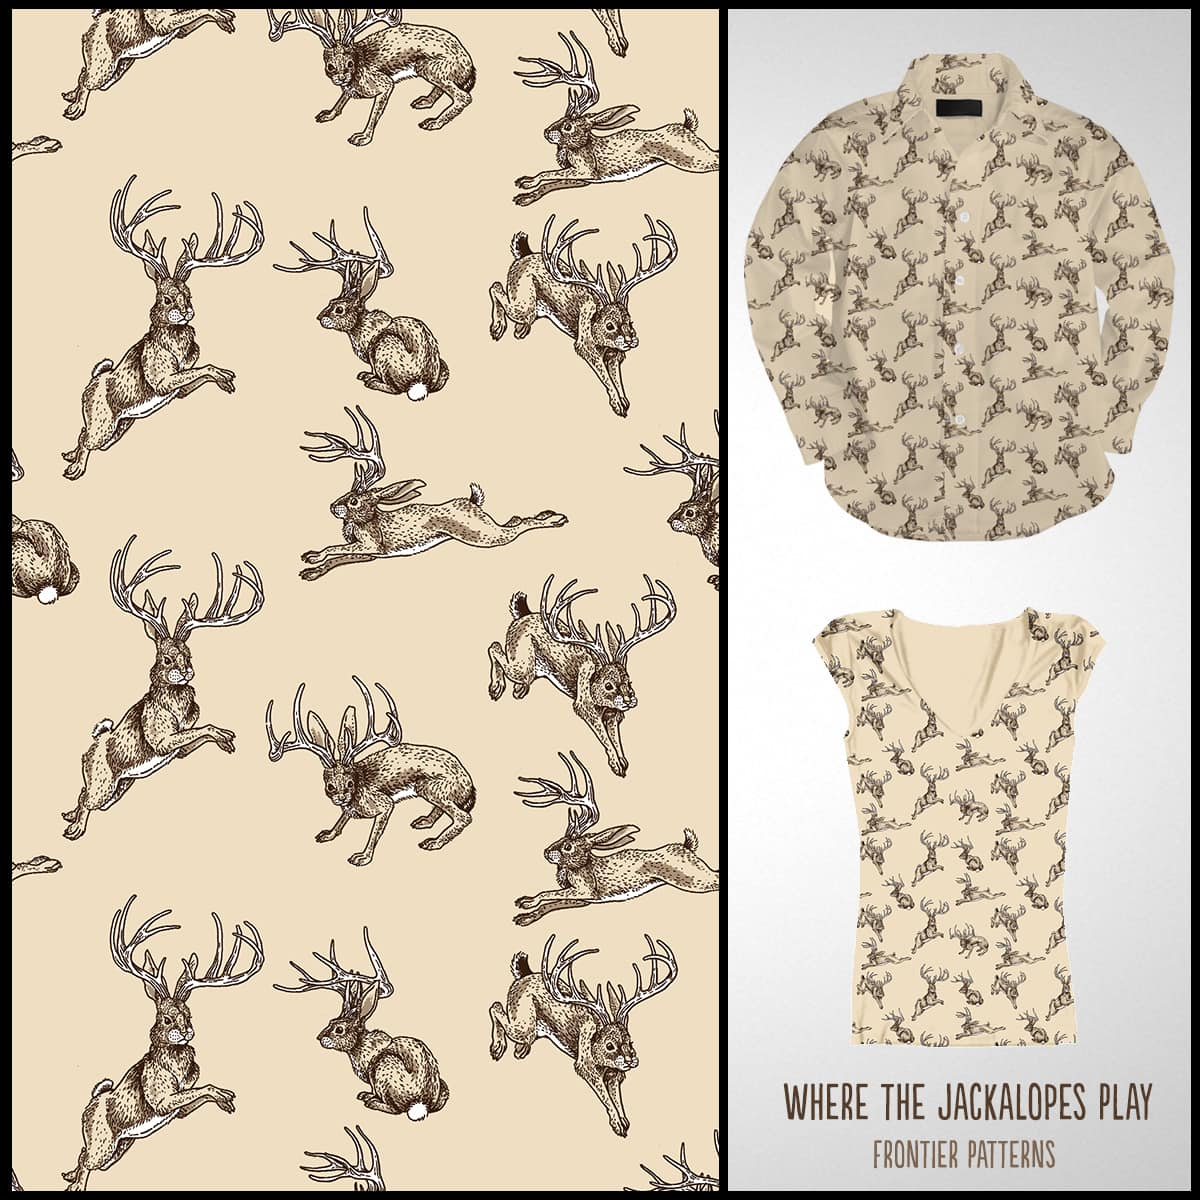 Where the Jackalopes Play by ThisMightHurt on Threadless